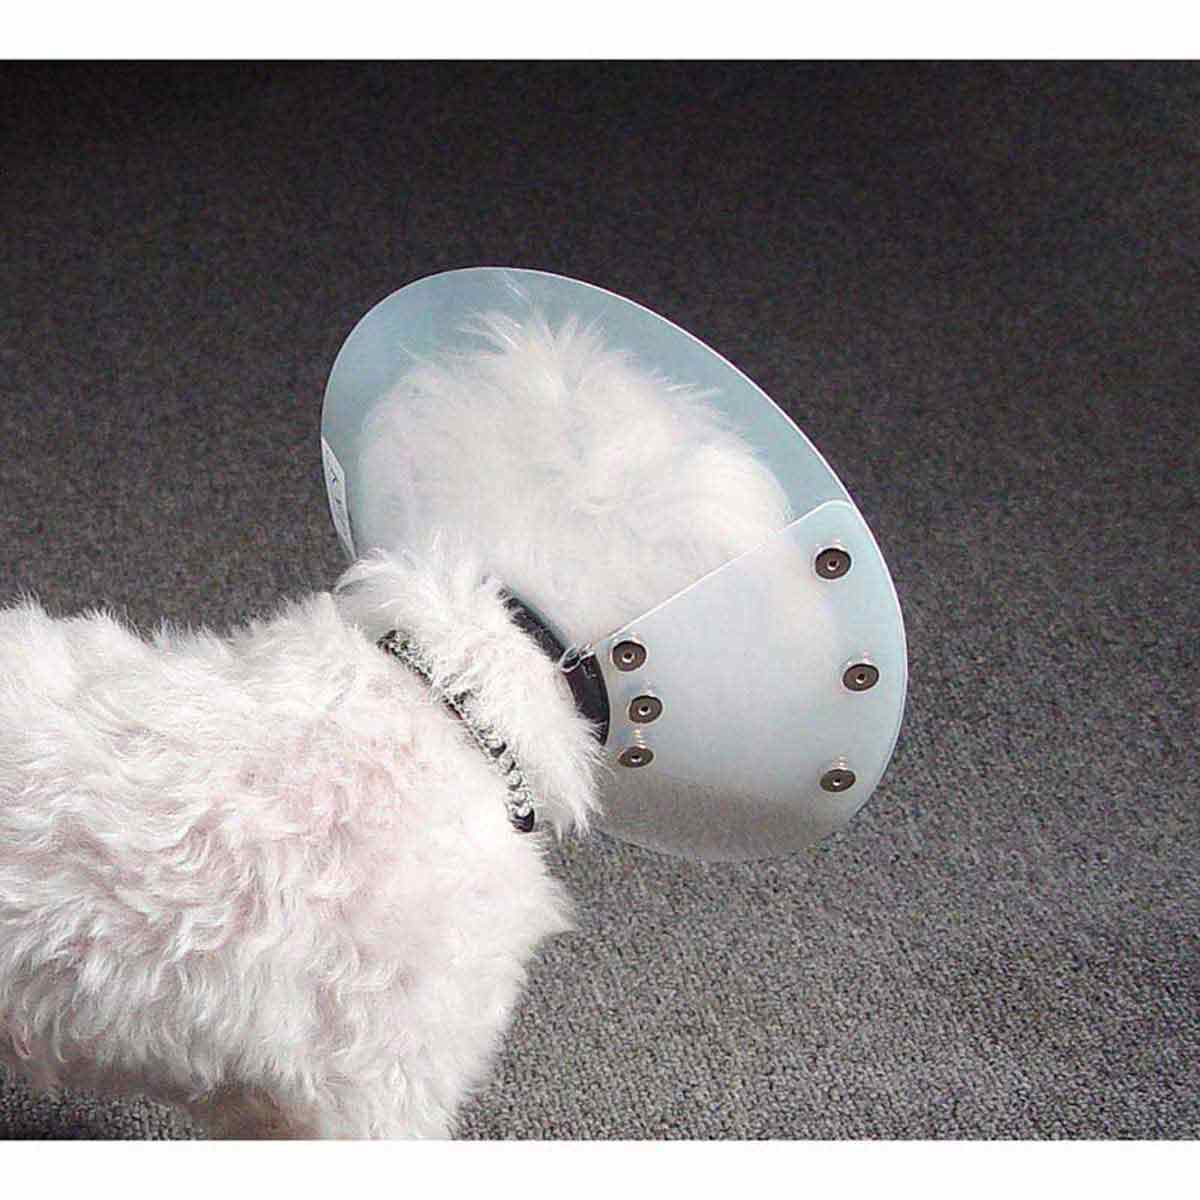 Posterior View of KVP Saf-T-Shield Elizabethan Collar with 10-13.5 inch Opening